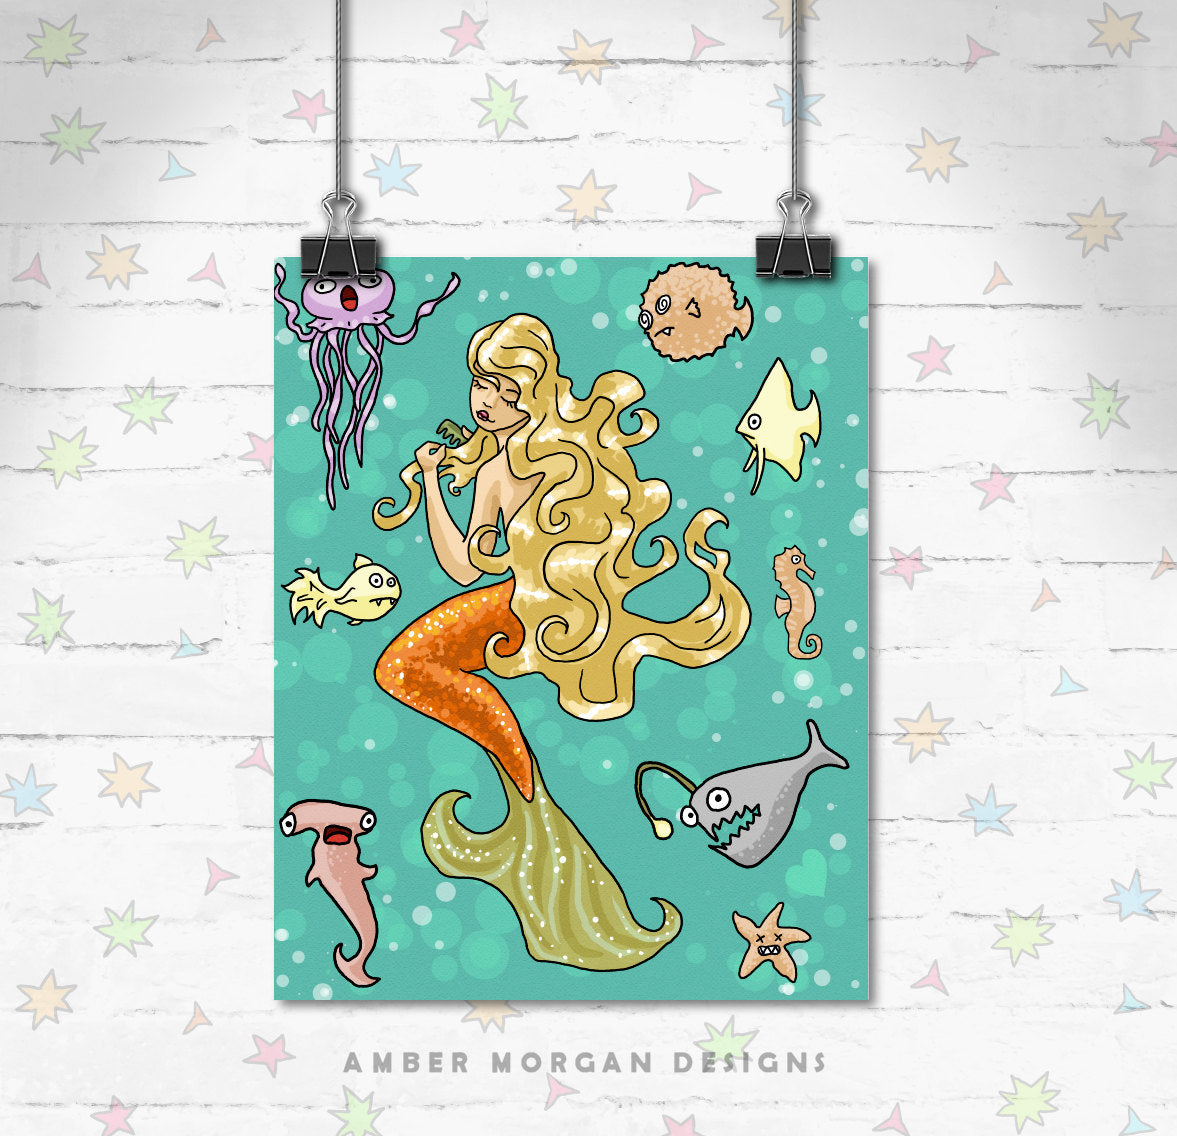 Mermaid 8x10 Print